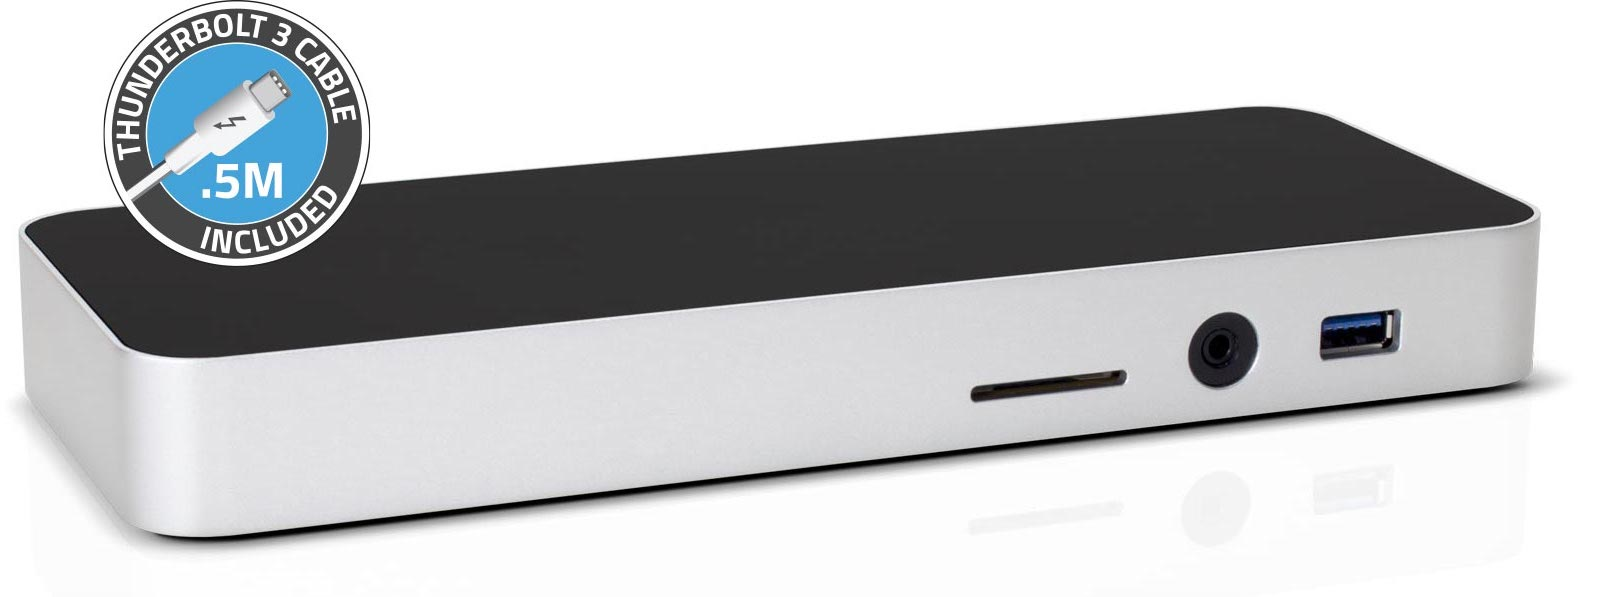 OWC Thunderbolt 3 Dock front